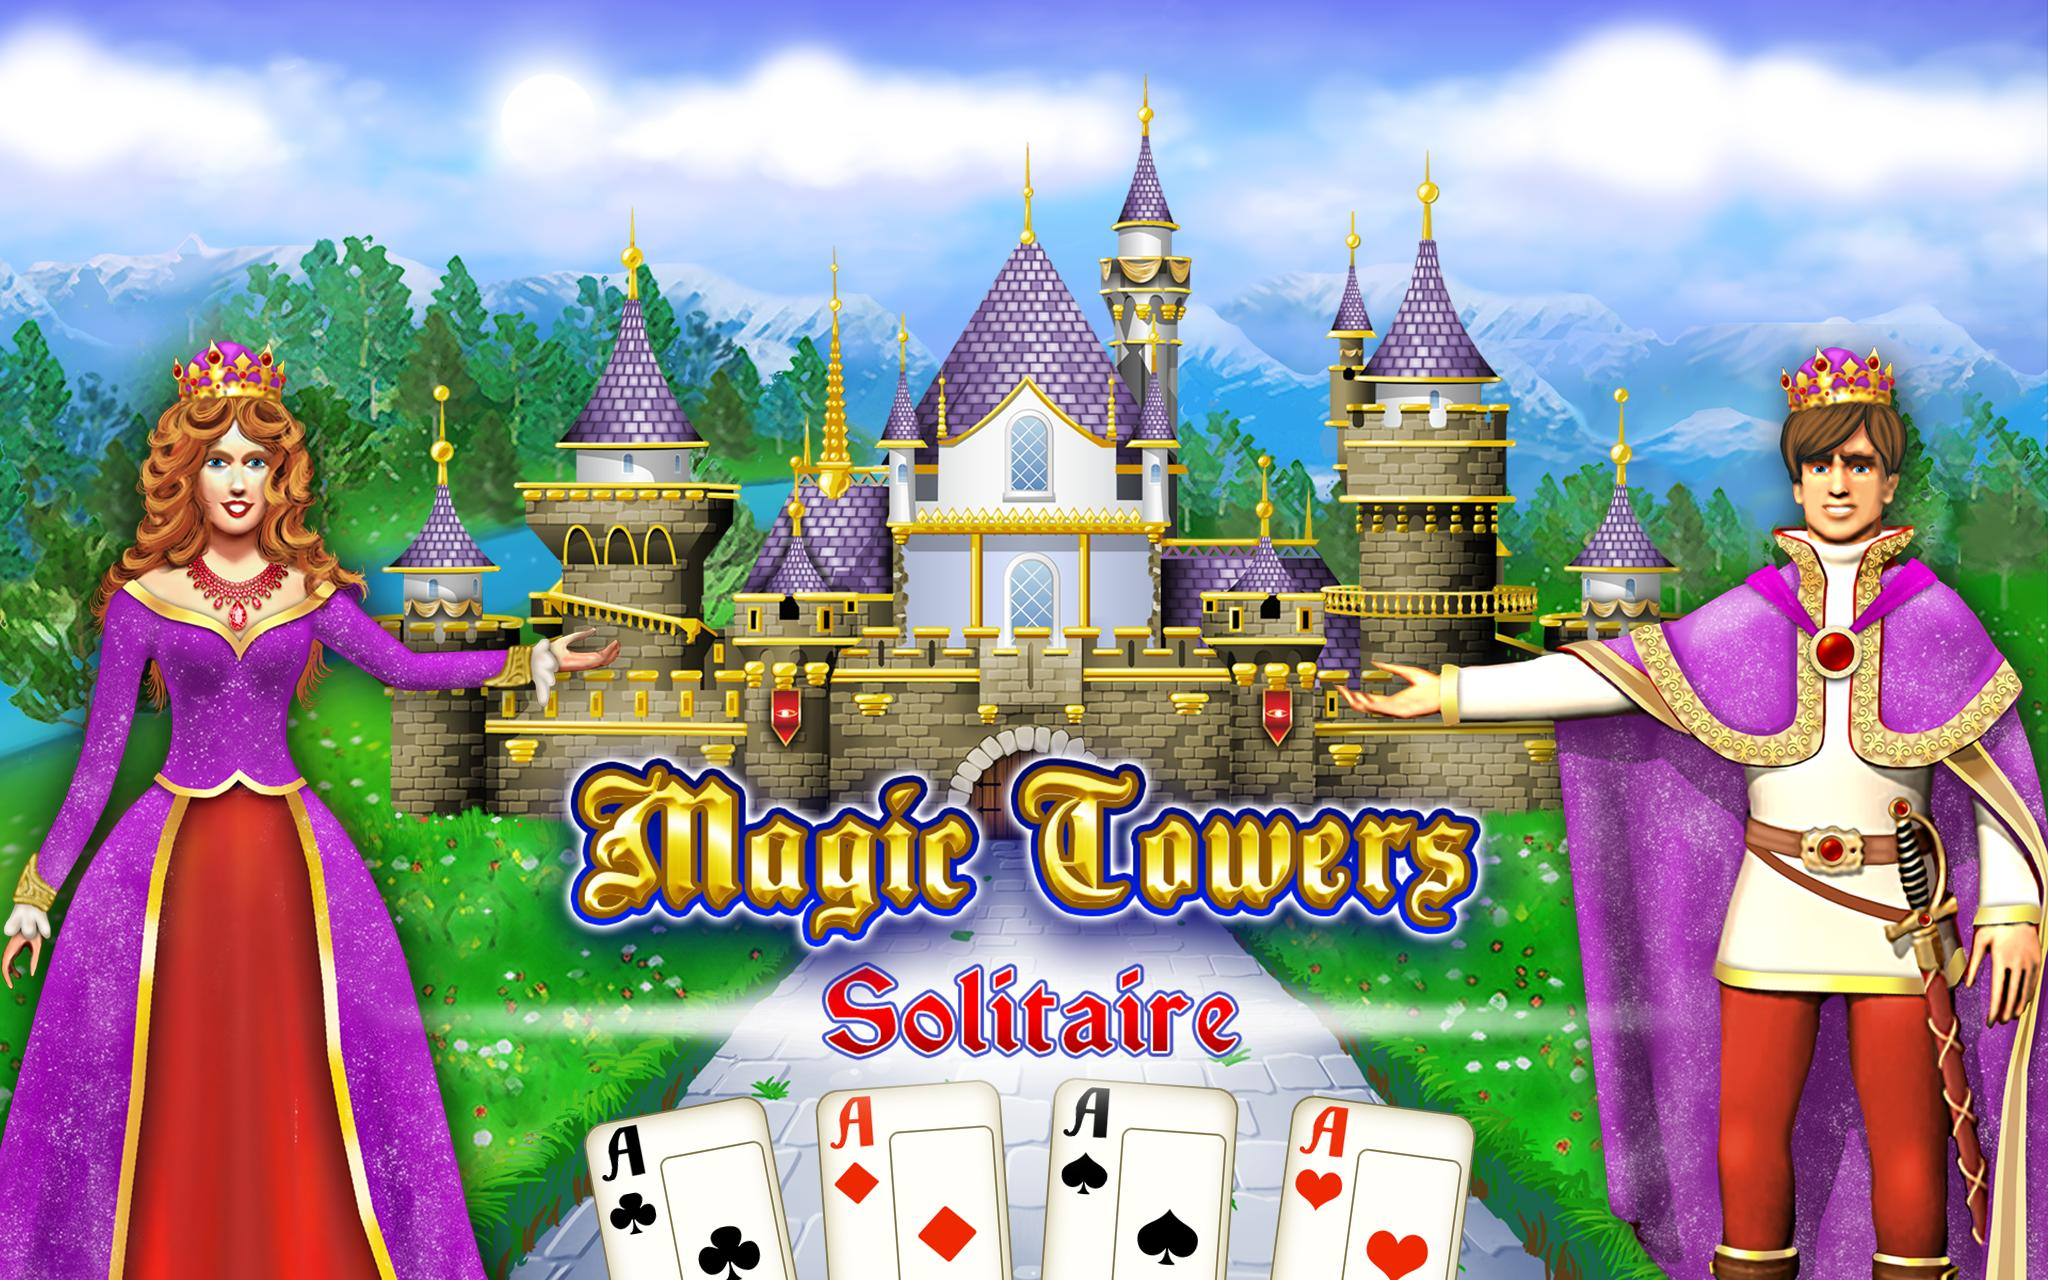 Magic Towers Solitaire Tri Peaks 1.53.21-g Screenshot 10